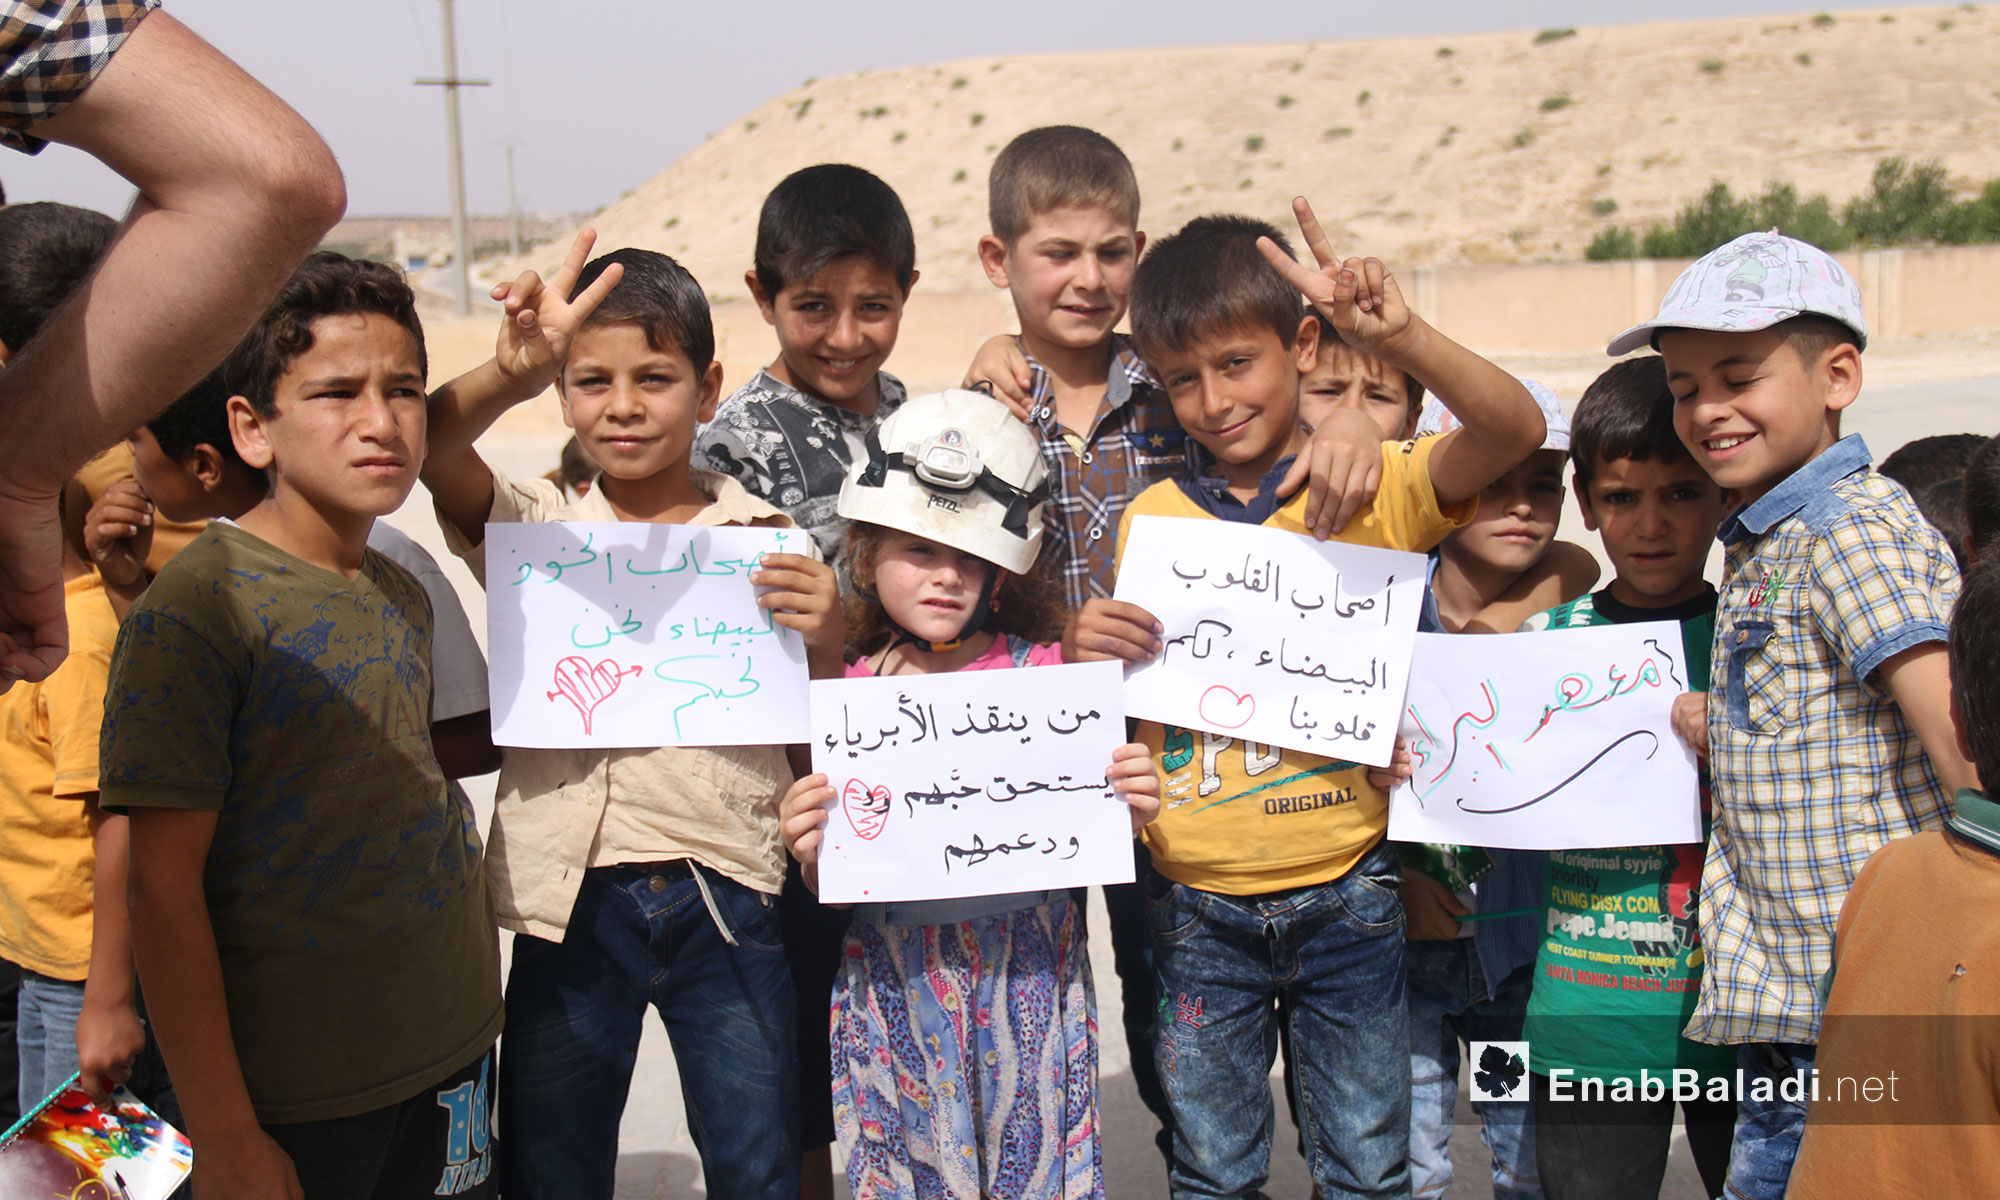 """Teachers and students from """"The Buds of the Future"""" school stand in solidarity with the """"White Helmets"""" in rural Idlib (the signs from left to right say:  The White Helmets, We Love You; That Who Saves Innocents Deserves their Love and Support; The White Helmets, You Have Our Hearts; """"al-Baraa Institute"""") – July 25, 2018 (Enab Baladi)"""